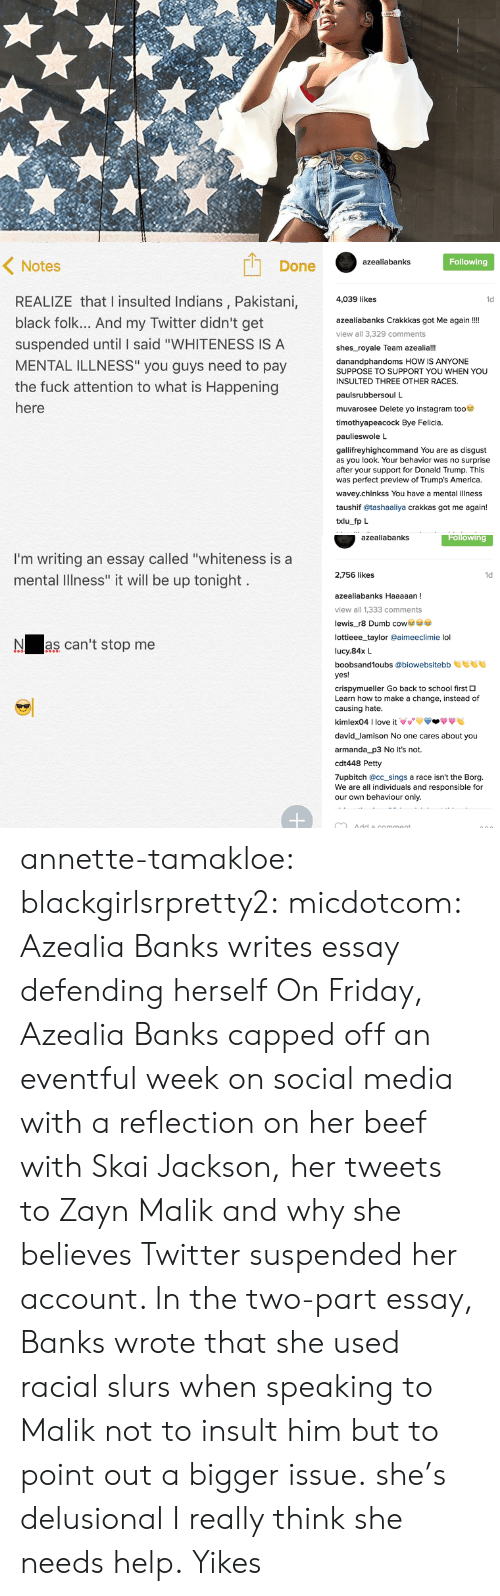 """America, Beef, and Bye Felicia: Done  Following  azealiabanks  Notes  REALIZE that l insulted Indians, Pakistani,  black folk... And my Twitter didn't get  suspended until I said """"WHITENESS IS A  MENTAL ILLNESS"""" you guys need to pay  the fuck attention to what is Happening  4,039 likes  1d  azealiabanks Crakkkas got Me again!!  view all 3,329 comments  shes_royale Team azealia!!!  danandphandoms HOW IS ANYONE  SUPPOSE TO SUPPORT YOU WHEN YOU  INSULTED THREE OTHER RACES.  paulsrubbersoul L  muvarosee Delete yo instagram too  timothyapeacock Bye Felicia.  paulieswole L  gallifreyhighcommand You are as disgust  as you look. Your behavior was no surprise  after your support for Donald Trump. This  was perfect preview of Trump's America.  wavey.chinkss You have a mental illness  taushif @tashaaliya crakkas got me again!  txlu fp L   azealiabanks  Following  I'm writing an essay called """"whiteness is a  mental Illness"""" it will be up tonight  2,756 likes  1d  azealiabanks Haaaaan  view all 1,333 comments  lewis_r8 Dumb co  lottieee_taylor @aimeeclimie lol  lucy.84x L  boobsand1oubs @biowebsitebb  yes!  crispymueller Go back to school first O  Learn how to make a change, instead of  causing hate  kimlex04 I love it VVVV-ффе  Nas can't stop me  david_lamison No one cares about you  armanda_p3 No it's not.  cdt448 Petty  7upbitch @cc_sings a race isn't the Borg.  We are all individuals and responsible for  our own behaviour only. annette-tamakloe:  blackgirlsrpretty2:  micdotcom:  Azealia Banks writes essay defending herself On Friday, Azealia Banks capped off an eventful week on social media with a reflection on her beef with Skai Jackson, her tweets to Zayn Malik and why she believes Twitter suspended her account. In the two-part essay, Banks wrote that she used racial slurs when speaking to Malik not to insult him but to point out a bigger issue.   she's delusional  I really think she needs help.  Yikes"""